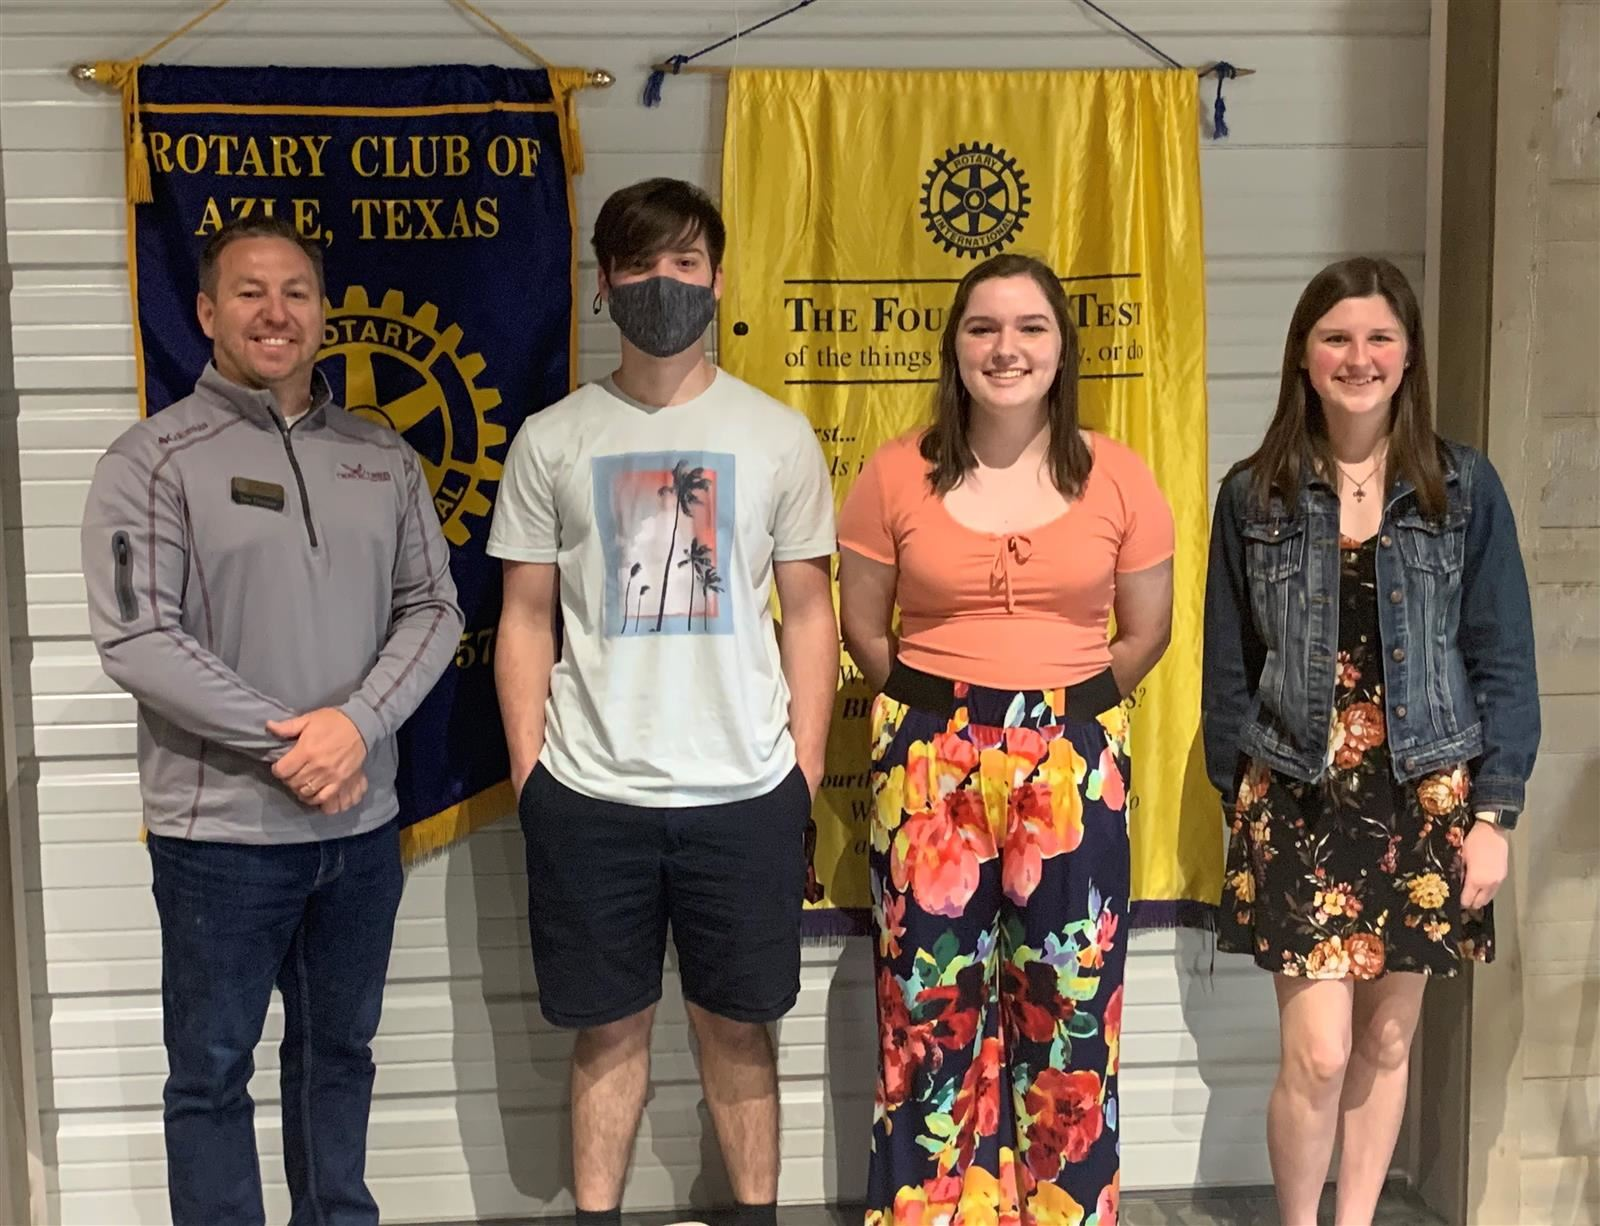 Rotary 4-Way Test Speech winners standing in front of Rotary Club flags